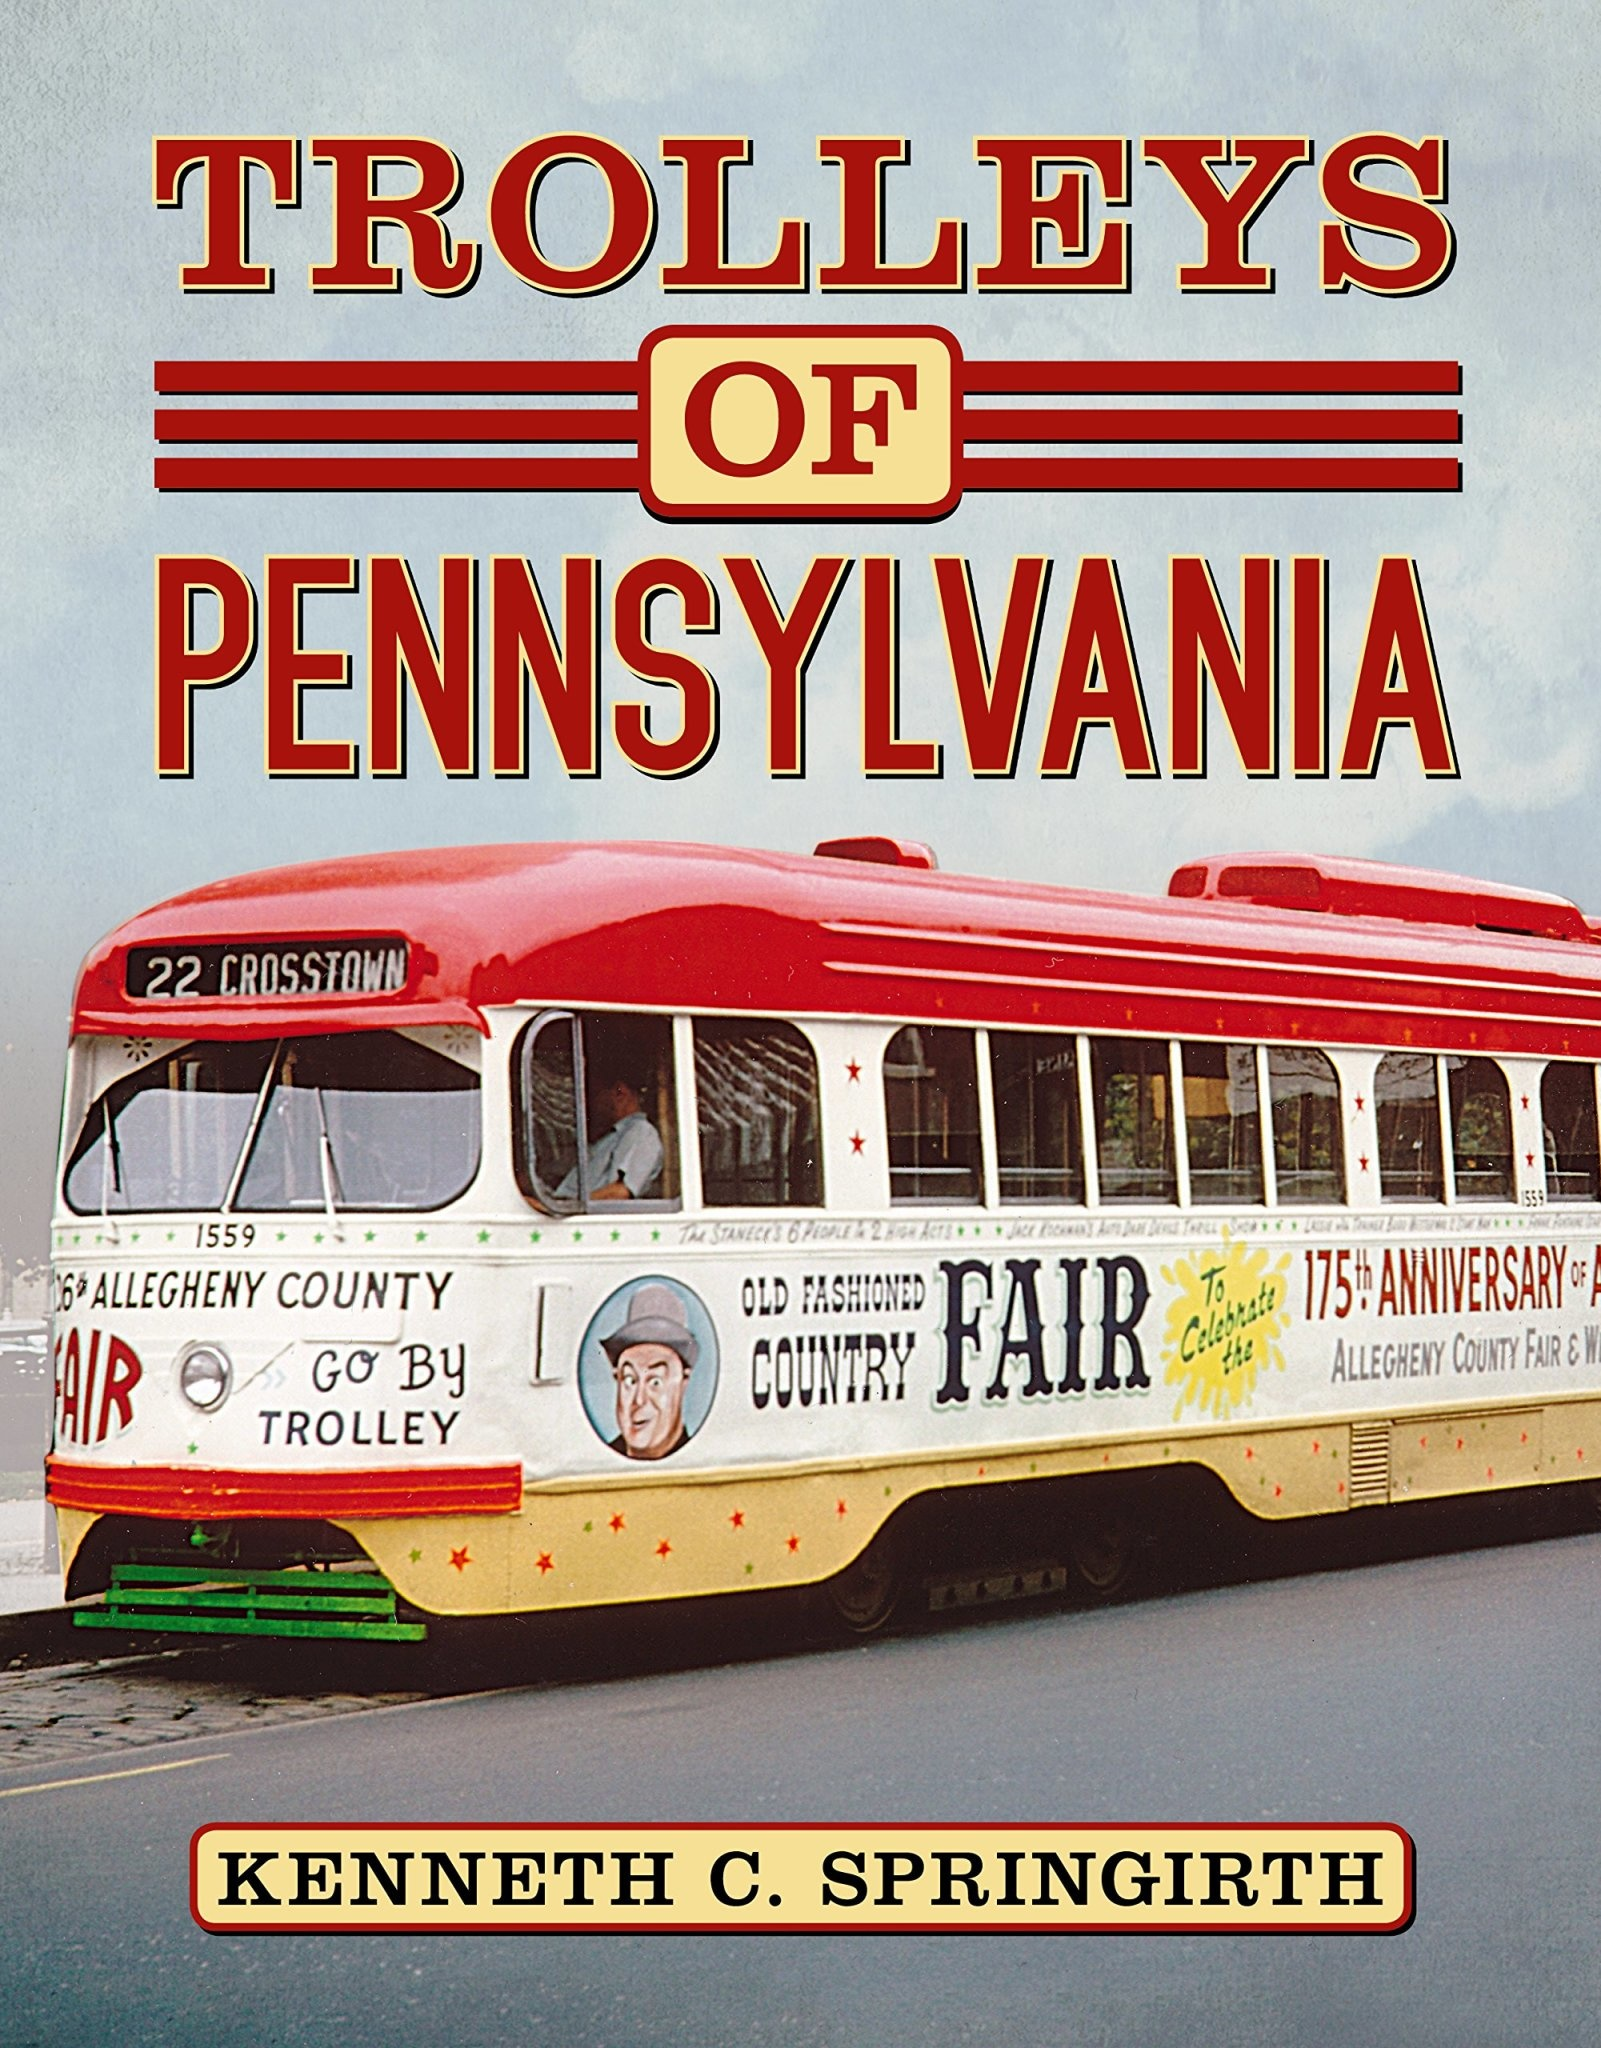 Trolleys of Pennsylvania - *SIGNED